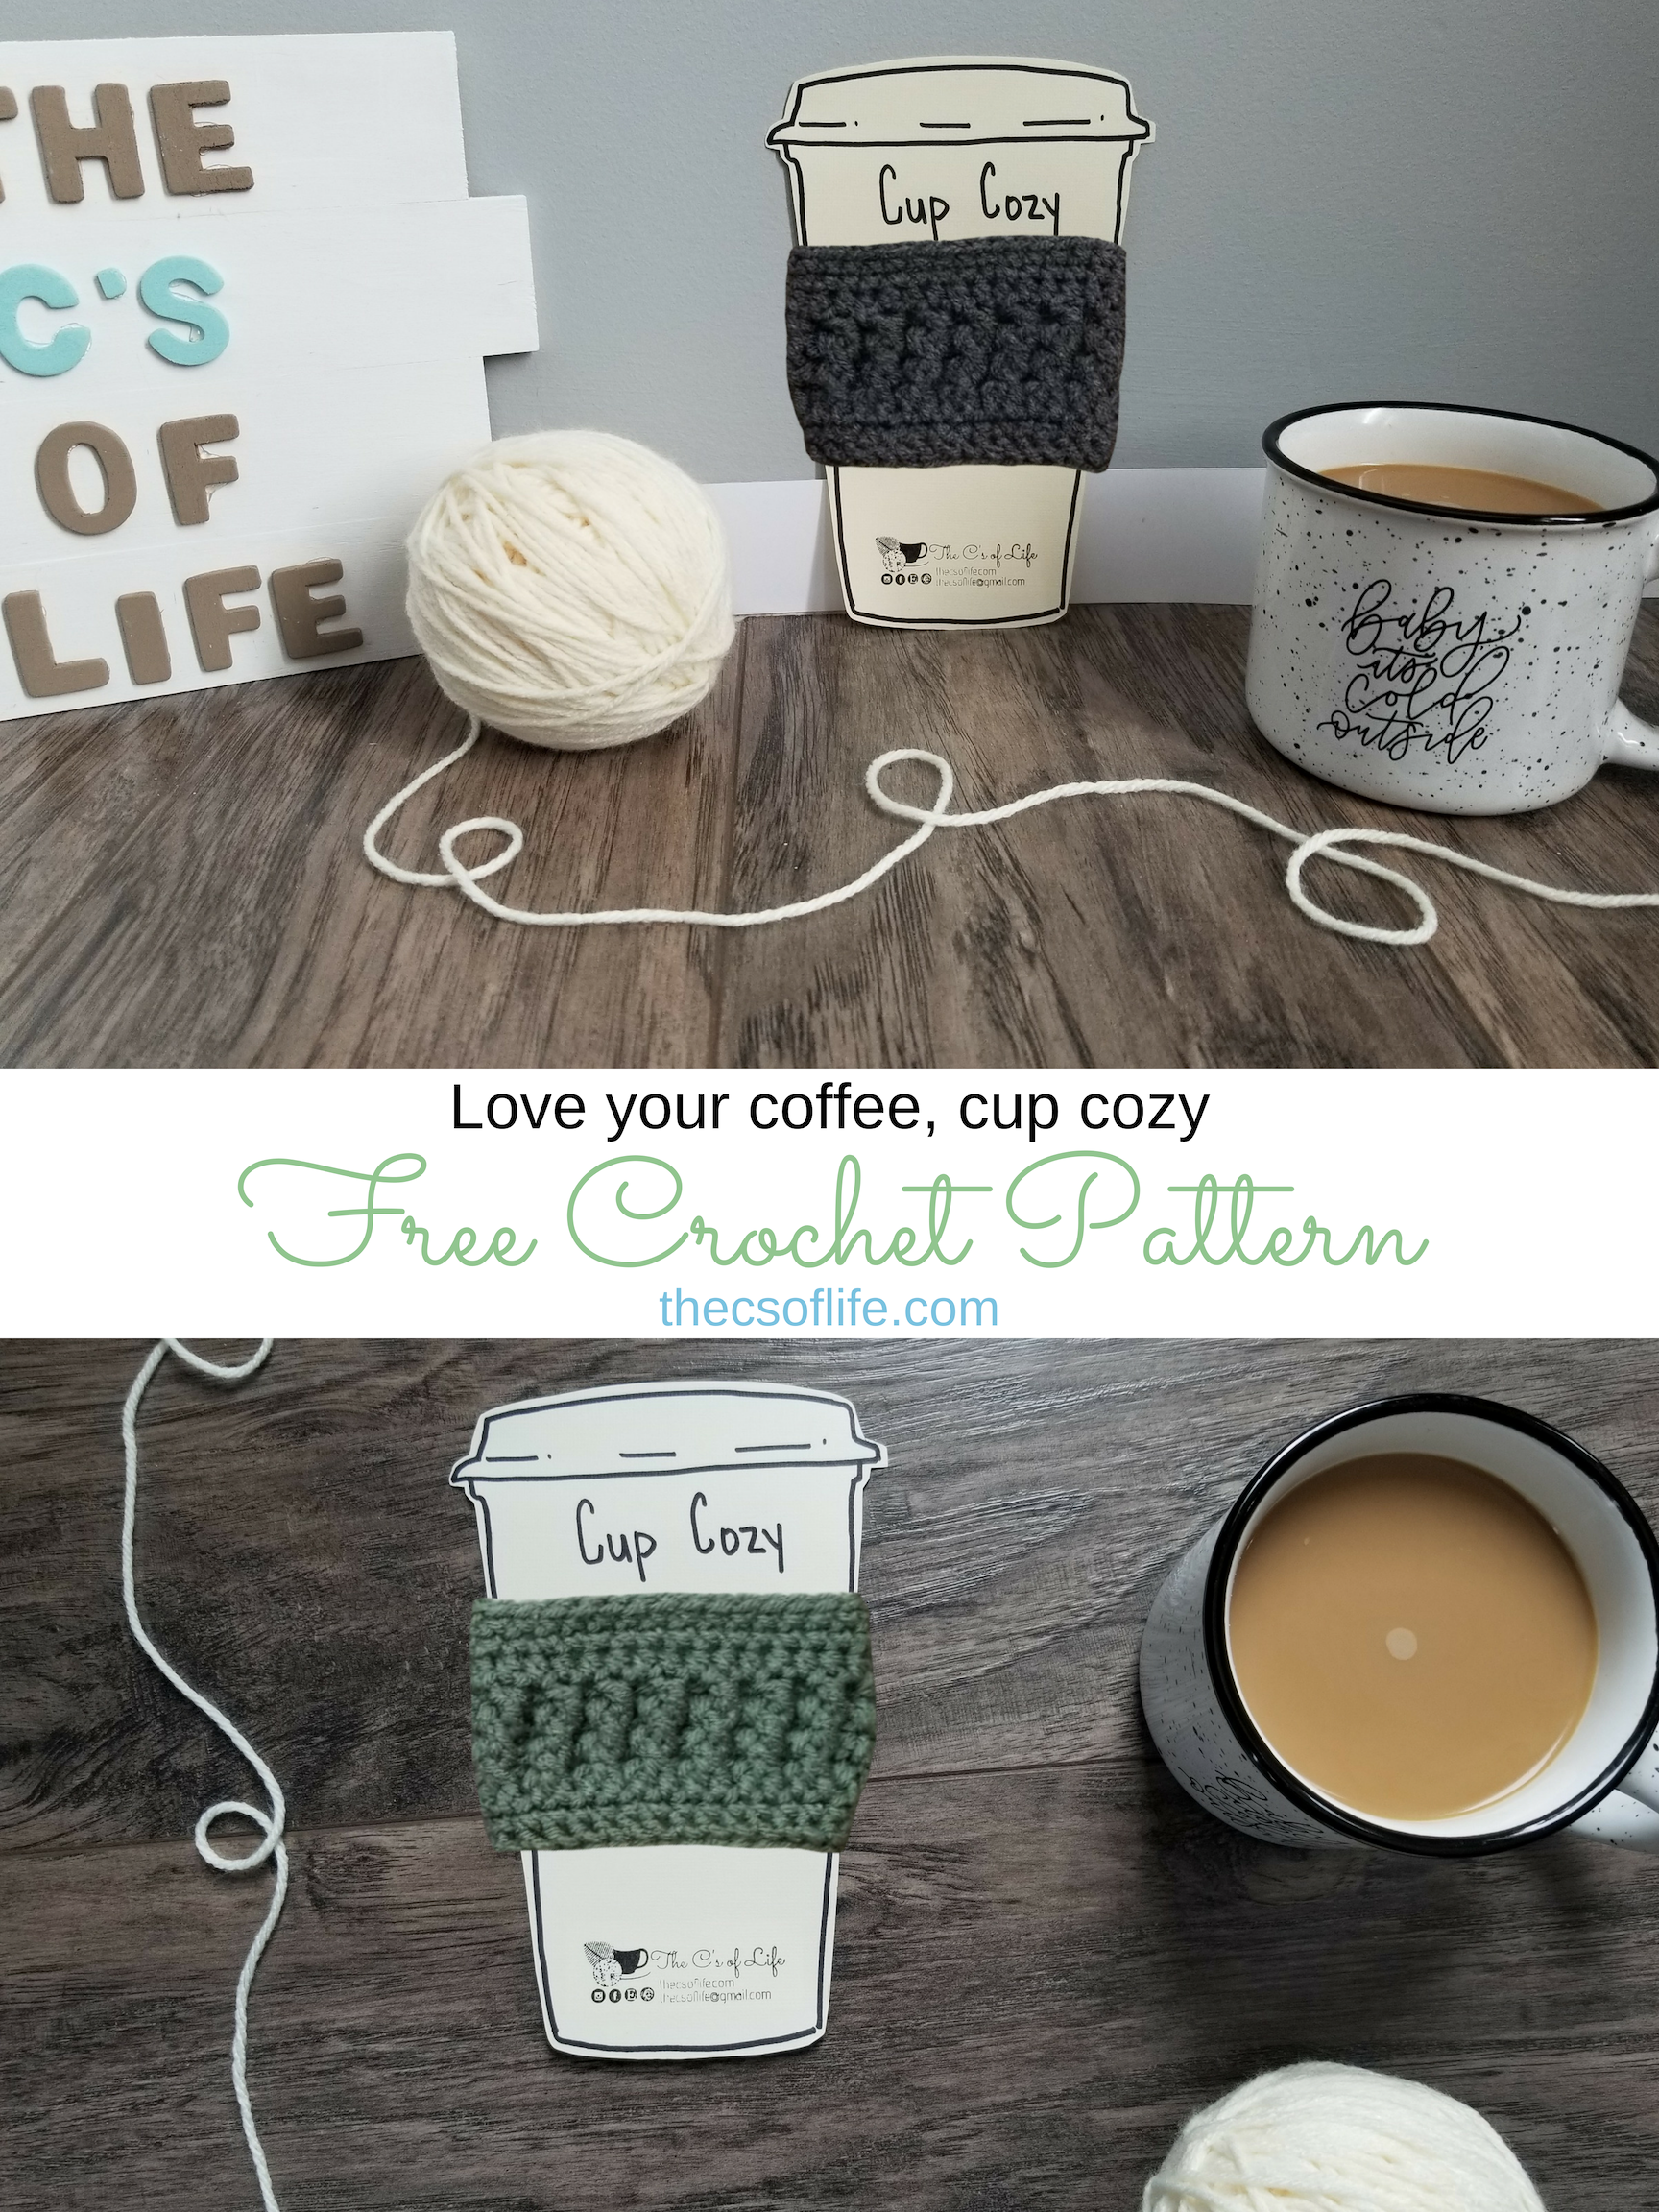 Love your coffee, cup cozy - Free Crochet Pattern